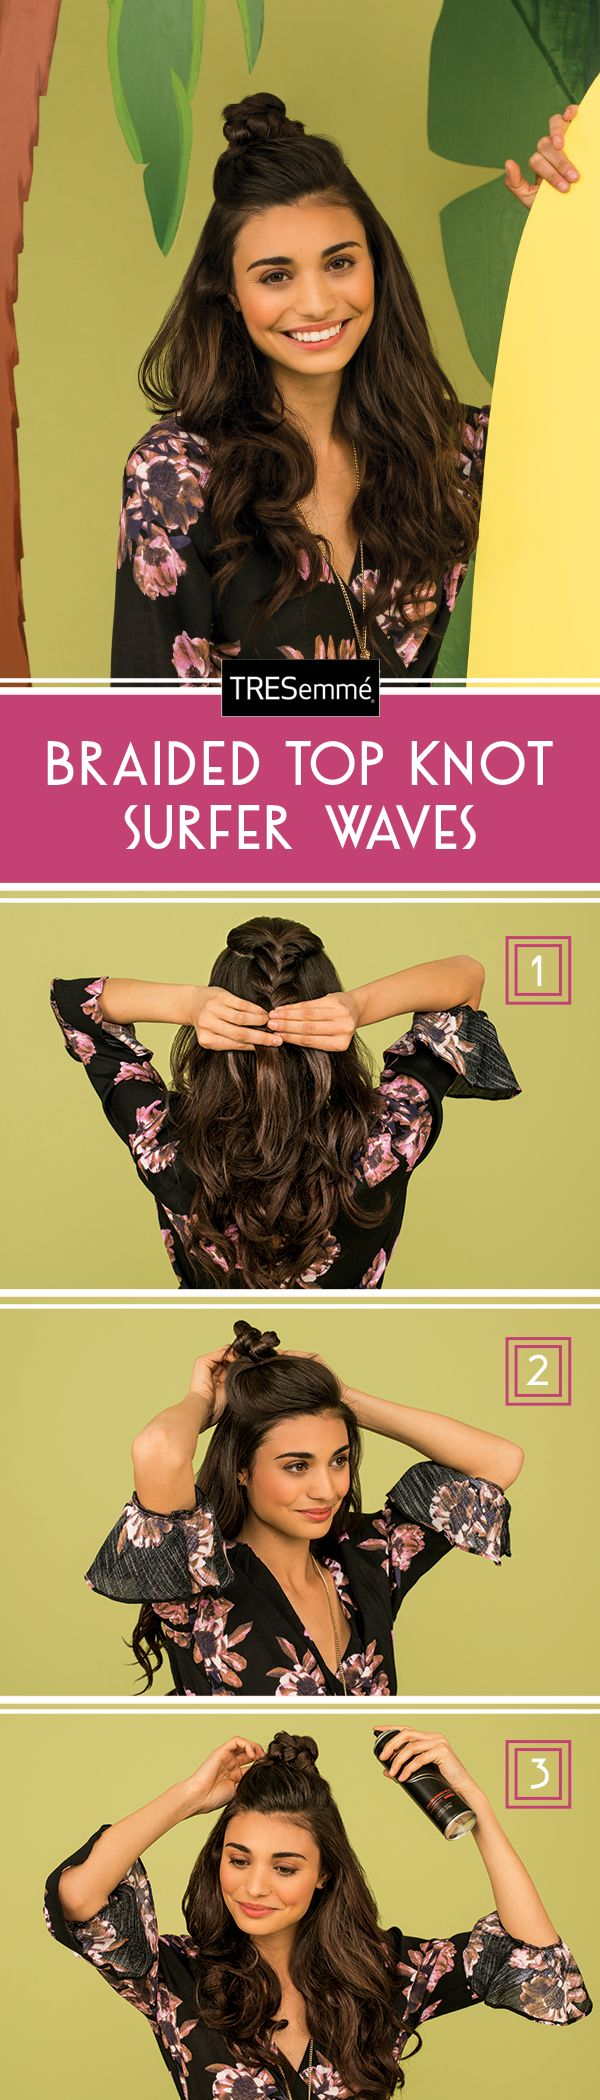 Can't decide on what to do with your hair? Why not do it all? This look combines gorgeous waves, braids, AND a topknot. It's easier than it looks!  step 1: Section off the hair at the top of your head and create a three strand braid (or a fishtail if you're feeling fancy.)  step 2: Wrap the braid into a topknot and pin in place.  step 3: Spray TRESemmé Perfectly (un)Done Hairspray 10-12 inches from your topknot to keep your look from getting tousled.